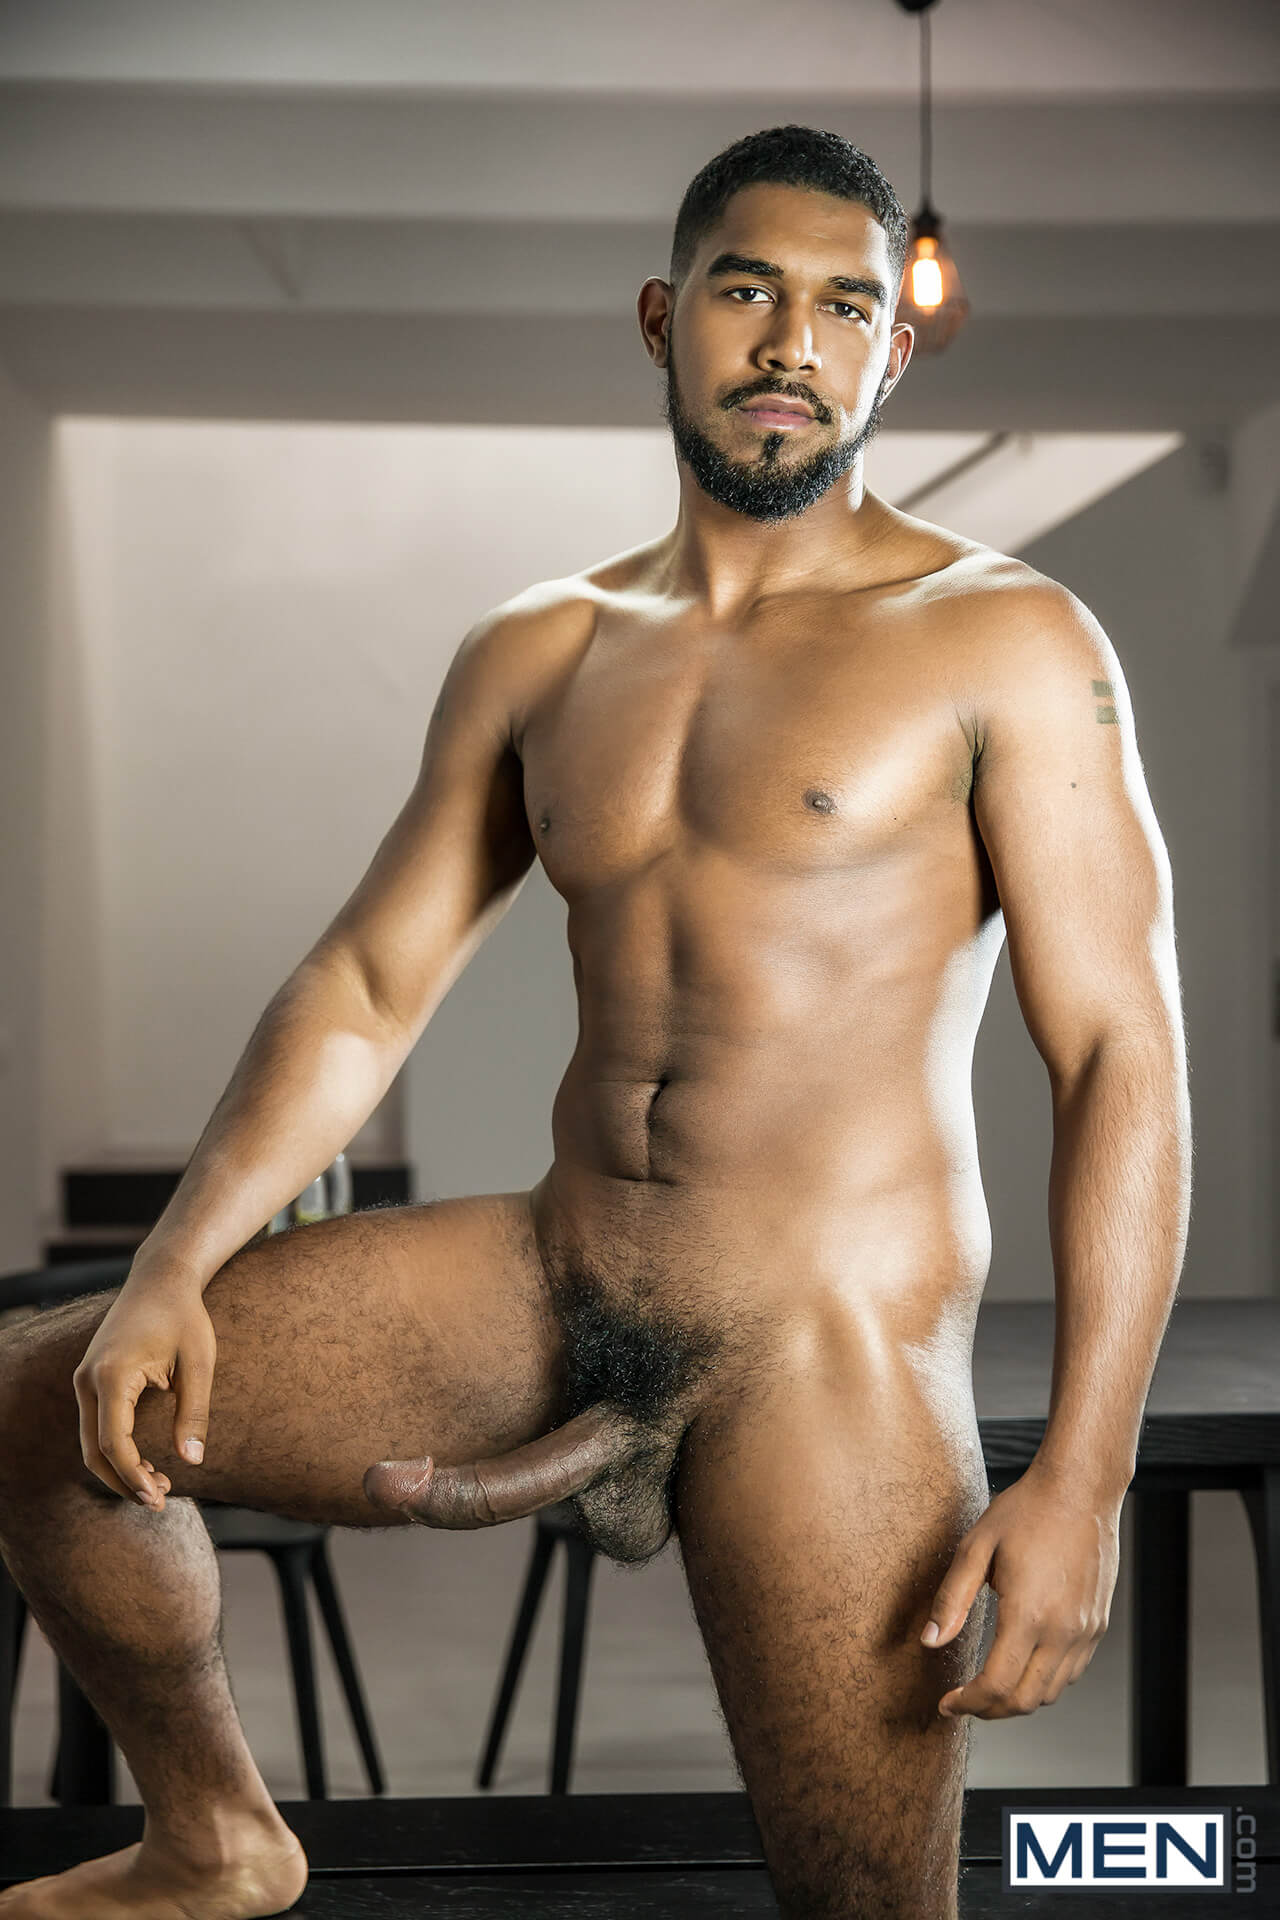 men gods of men discover dato foland xl gay porn blog image 6